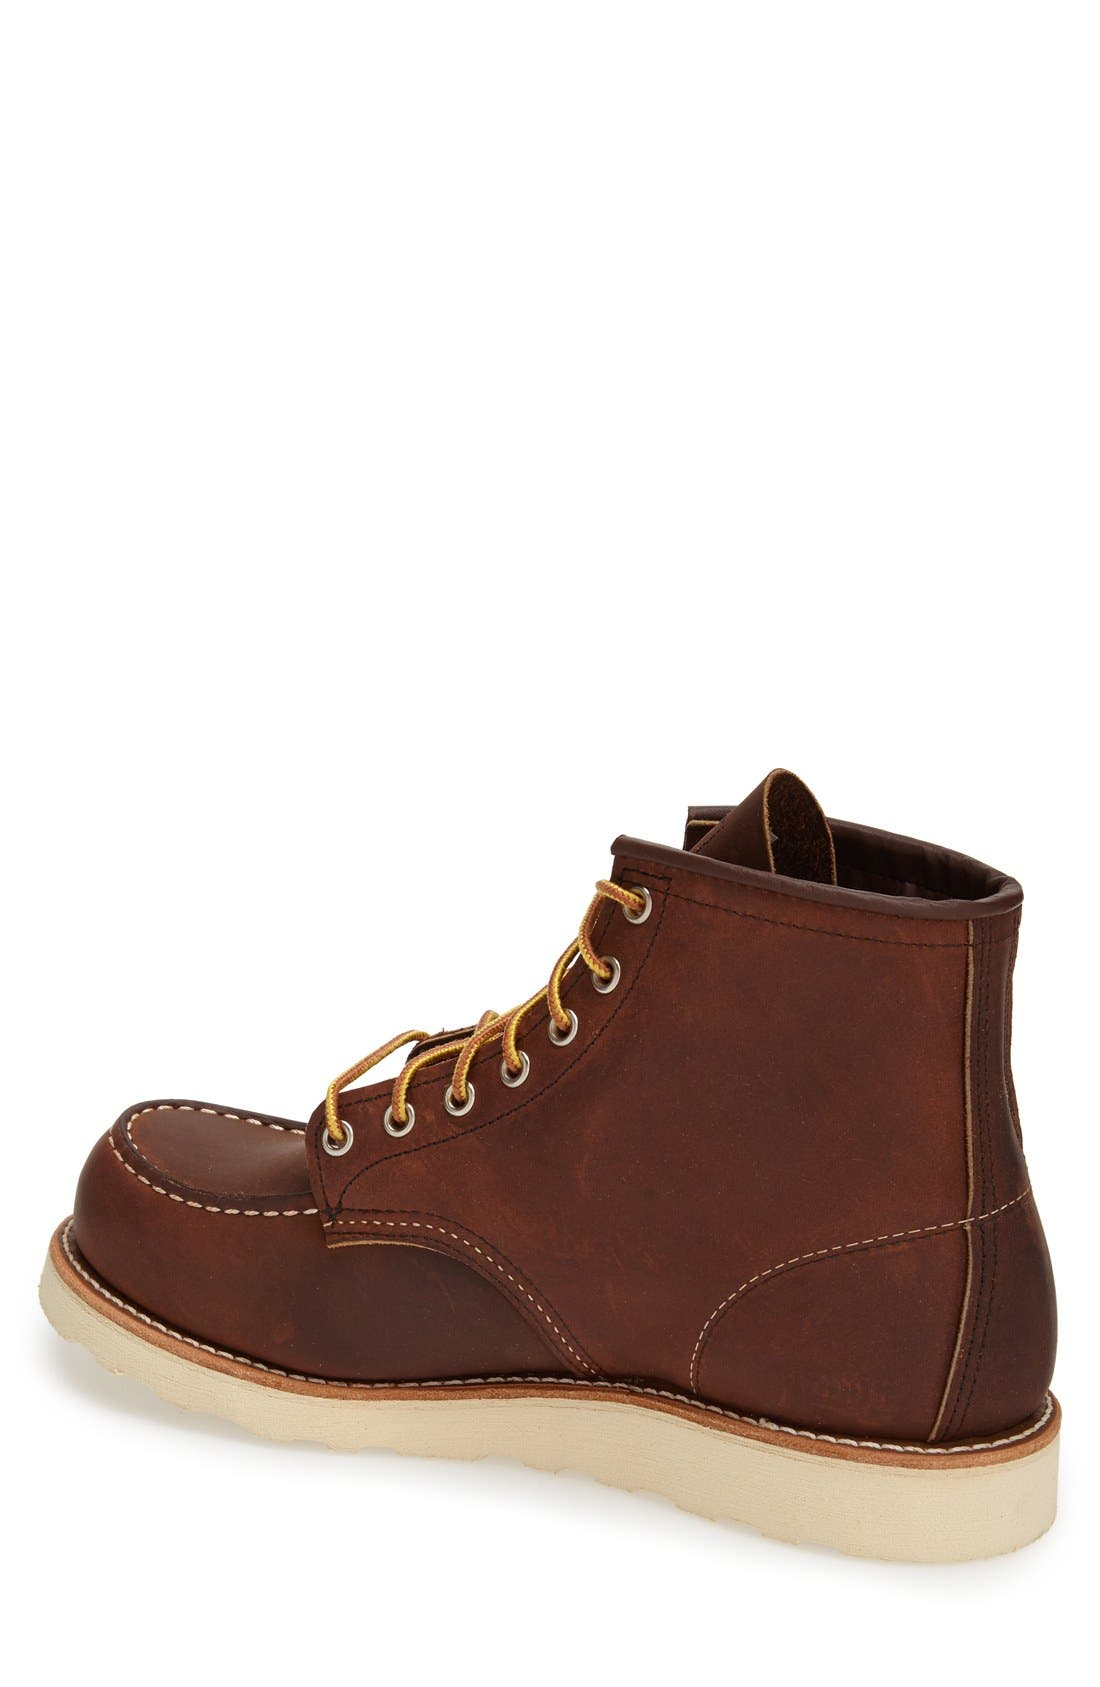 RED WING,                             6 Inch Moc Toe Boot,                             Alternate thumbnail 2, color,                             BOURBON YUMA LEATHER